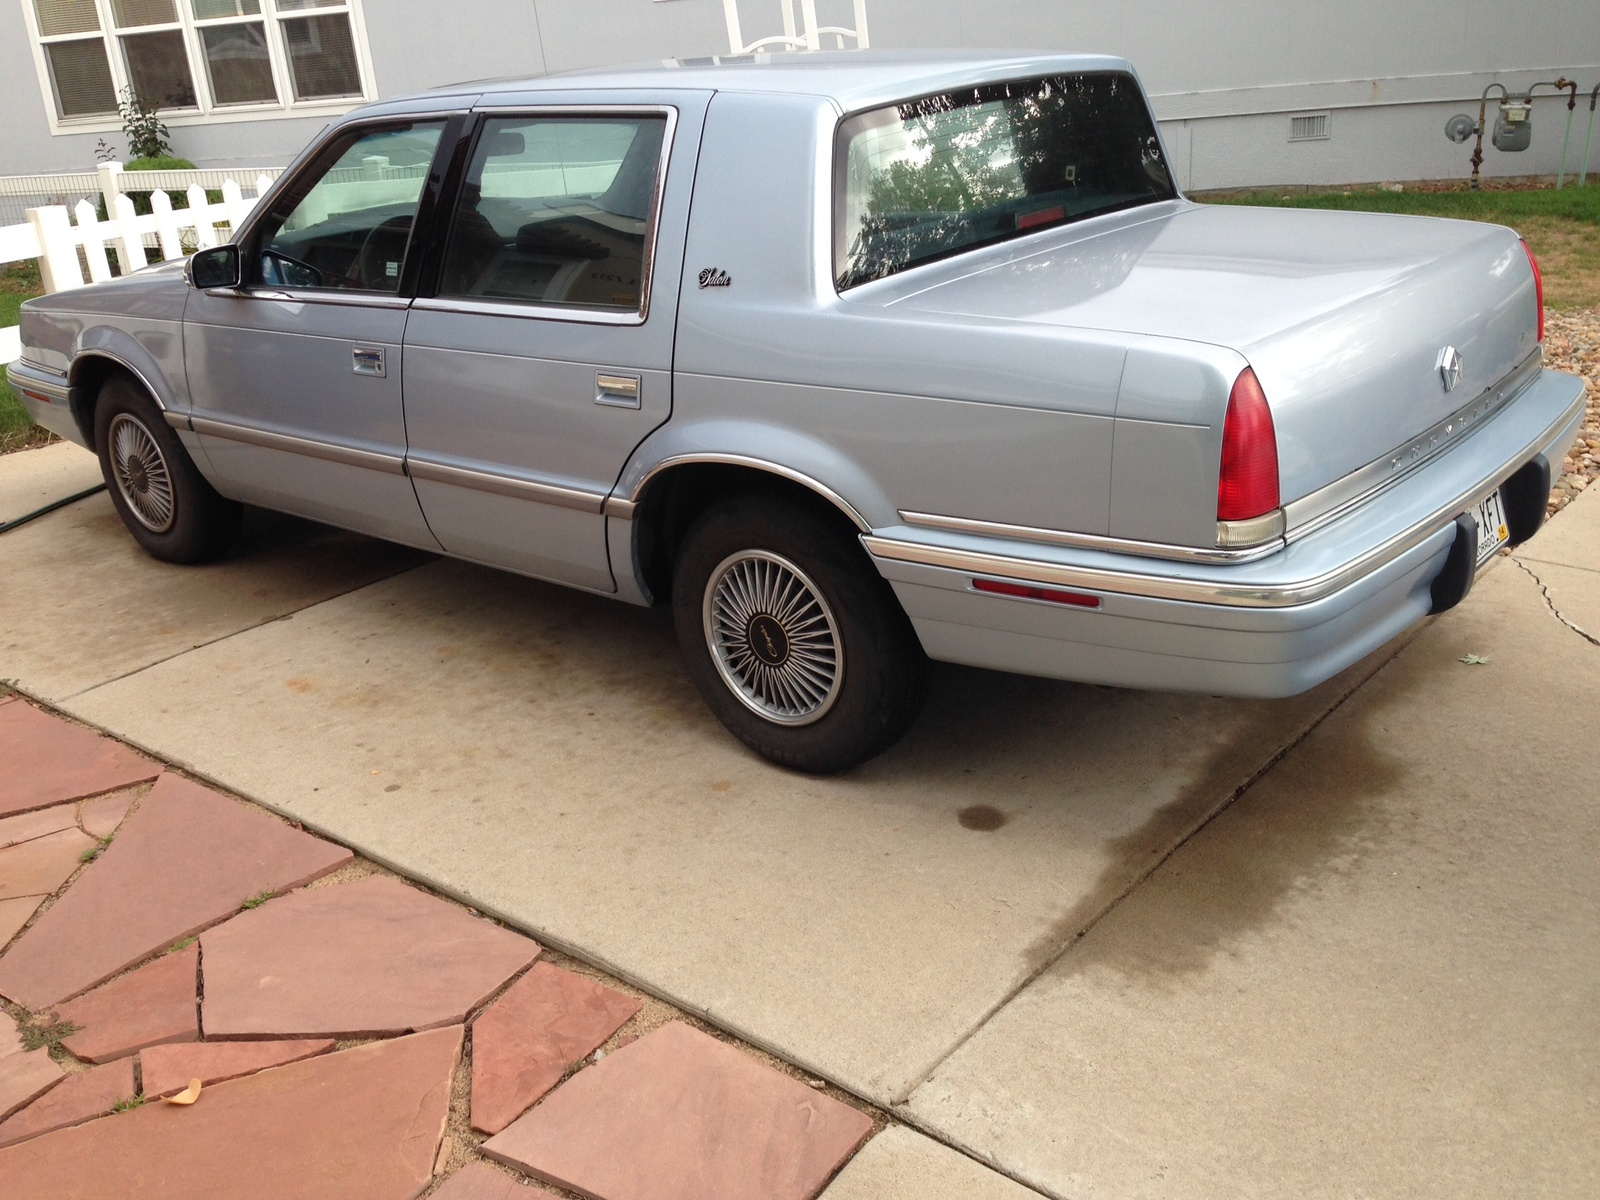 1992 chrysler new yorker overview cargurus for 1990 chrysler new yorker salon